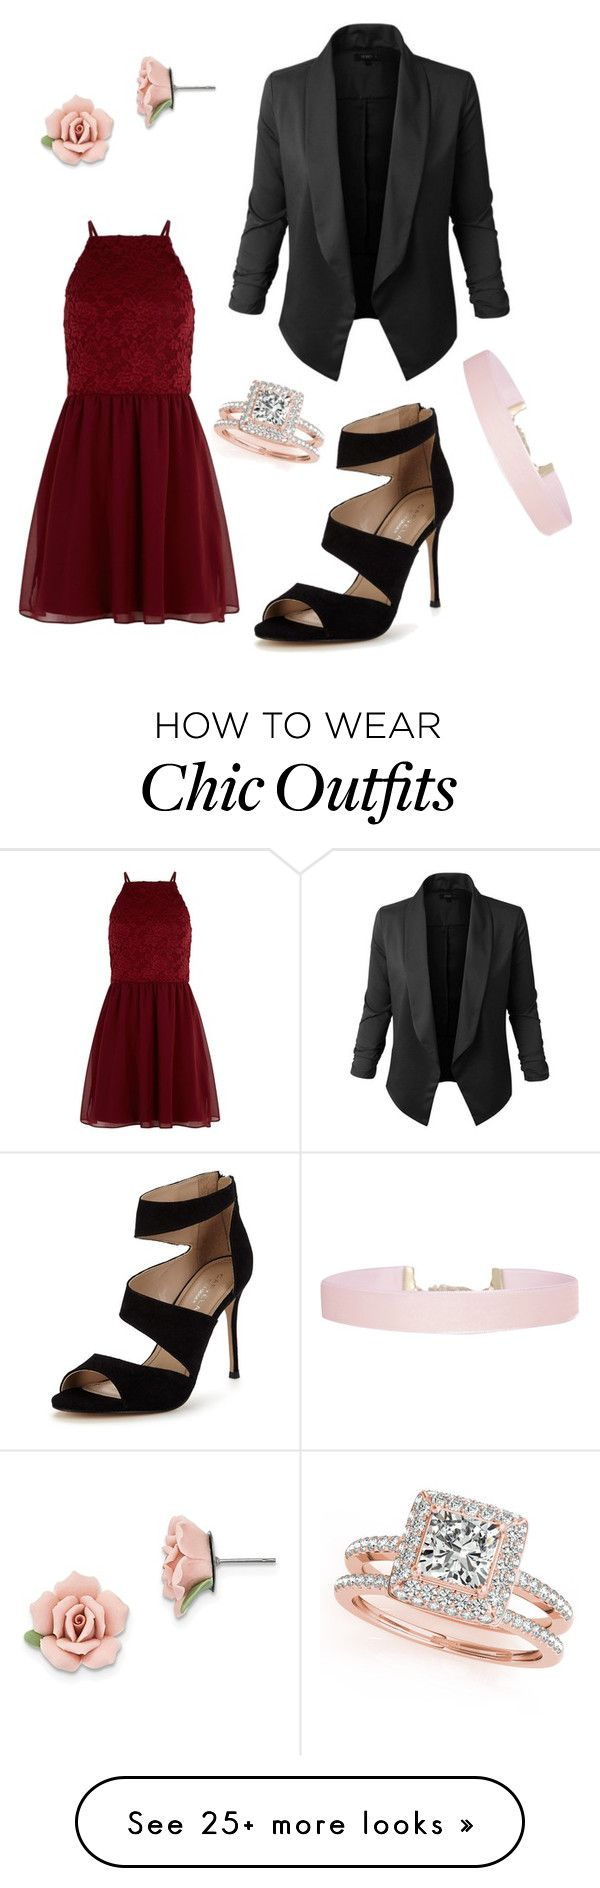 """Date Night ❤"" by denova17 on Polyvore featuring New Look, Jupe de Abby, Carvela, Humble Chic, Allurez and 1928"